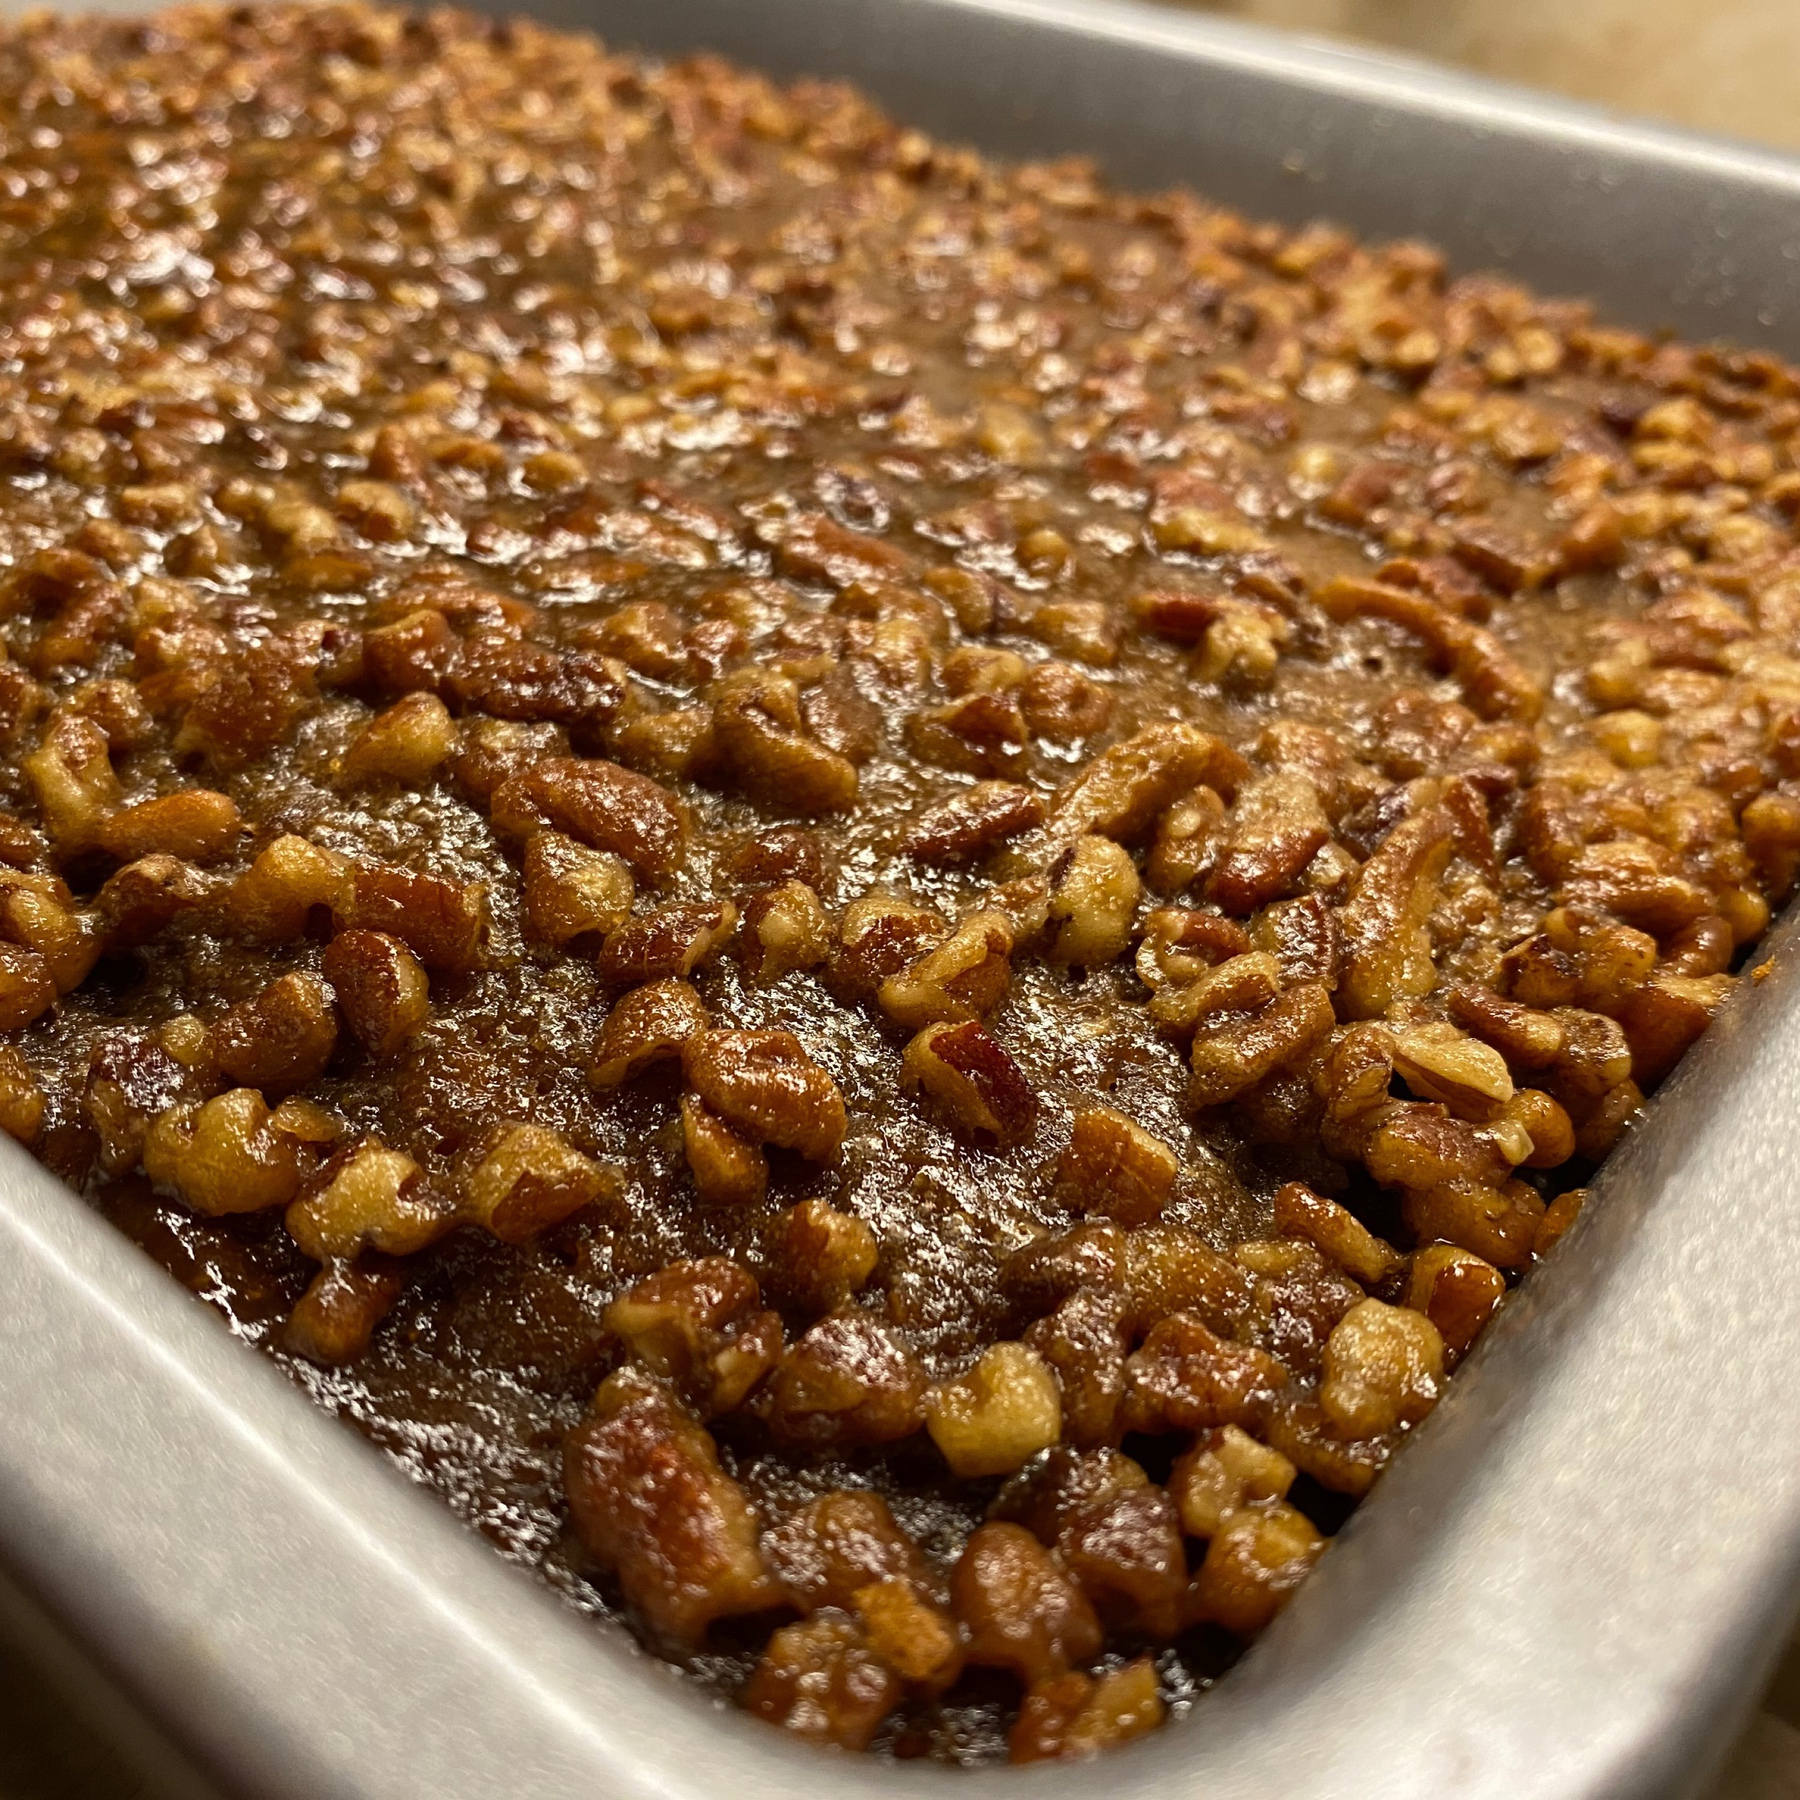 Pecans in glaze on top of cake.